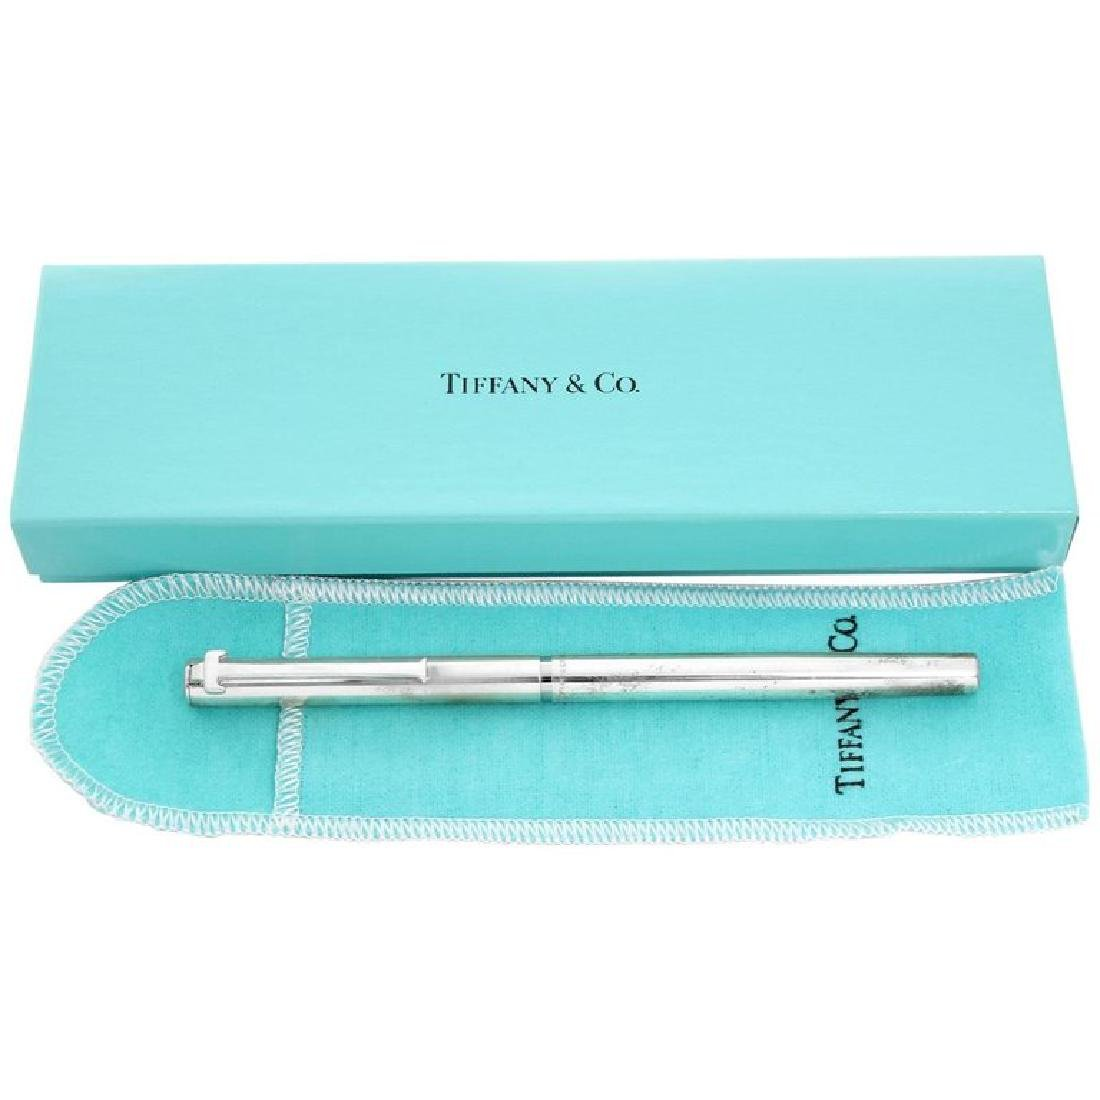 Vintage Tiffany & Co. Sterling Silver T-Clip Pen